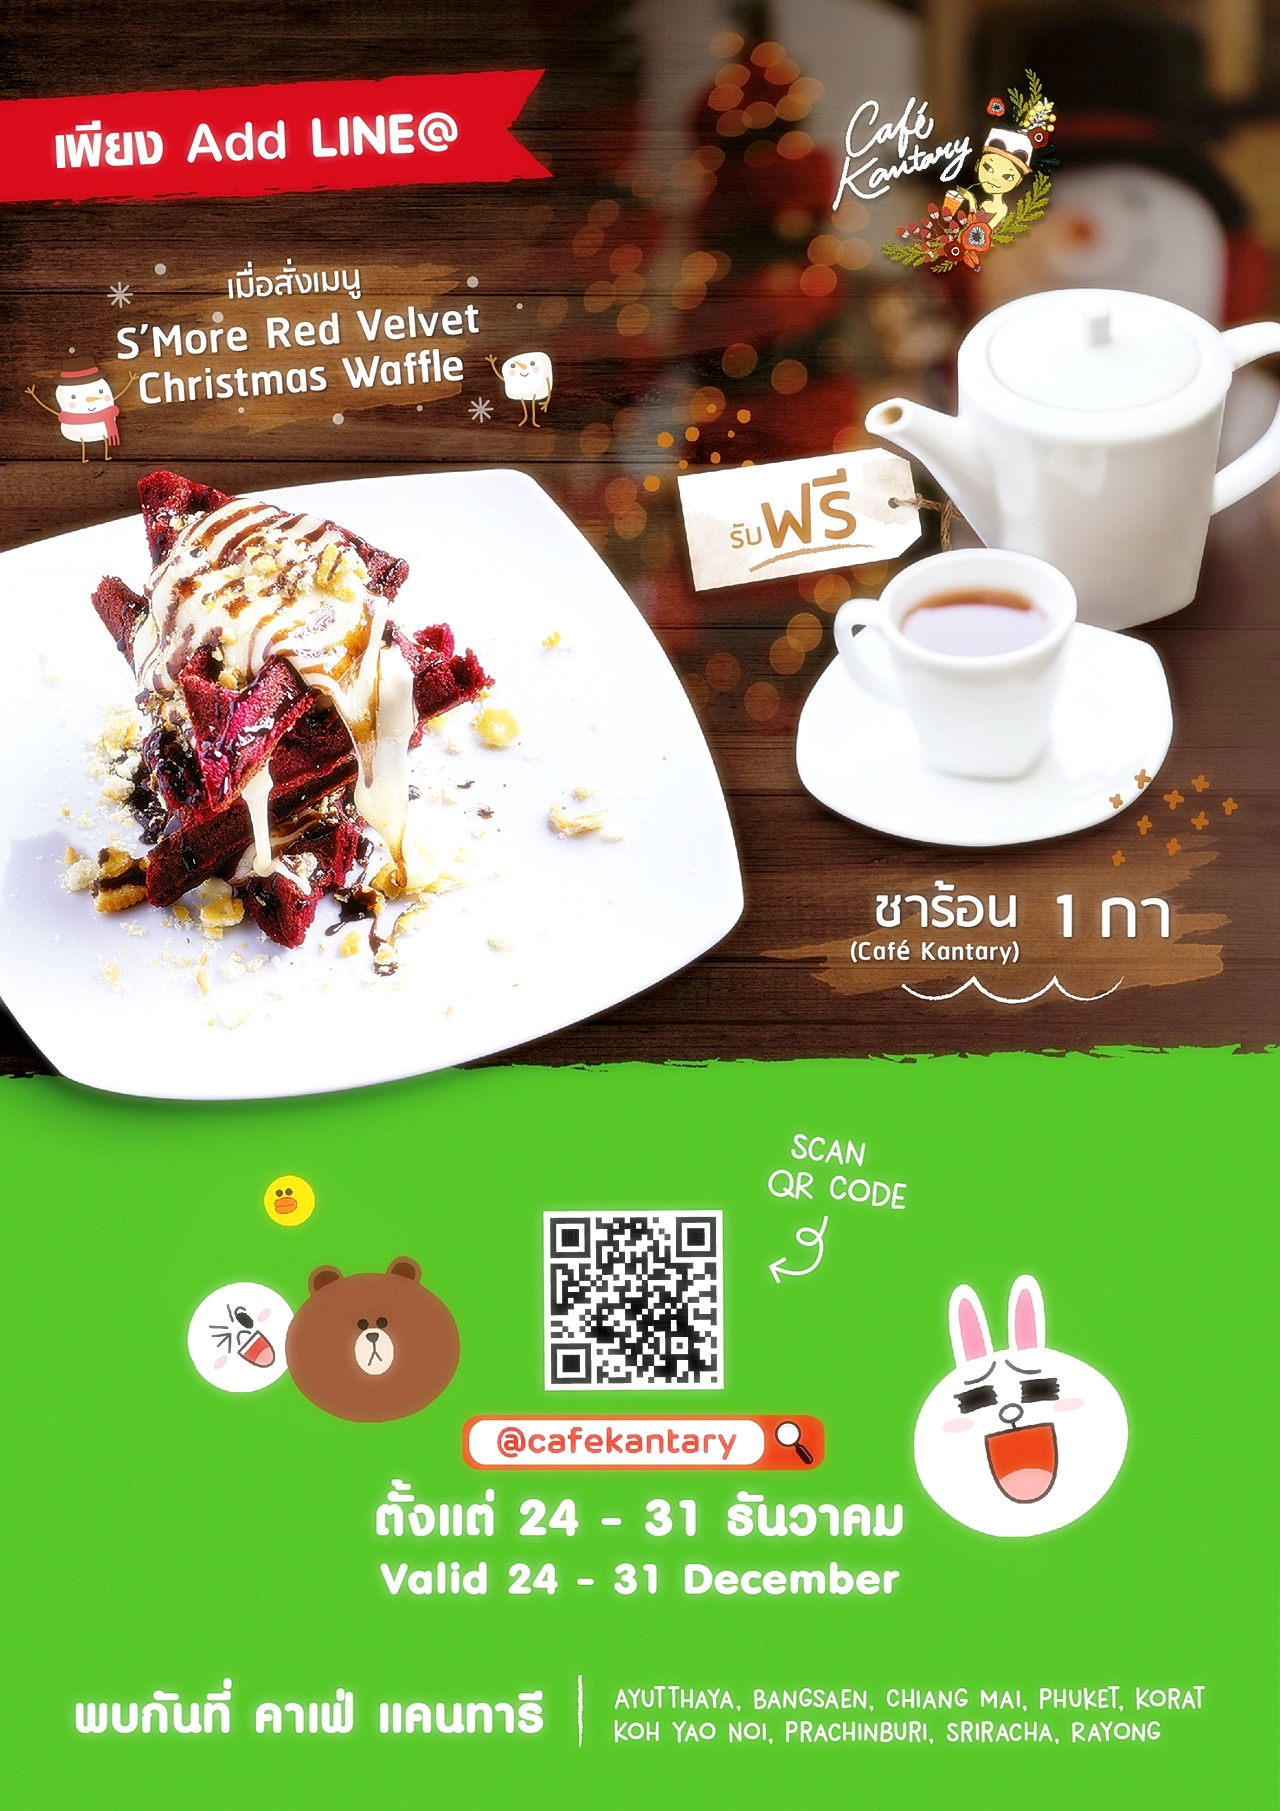 Cafe Kantary และสั่งเมนู S More Red Velvet Christmas Waffle รับฟรีชาร้อน 1 กา